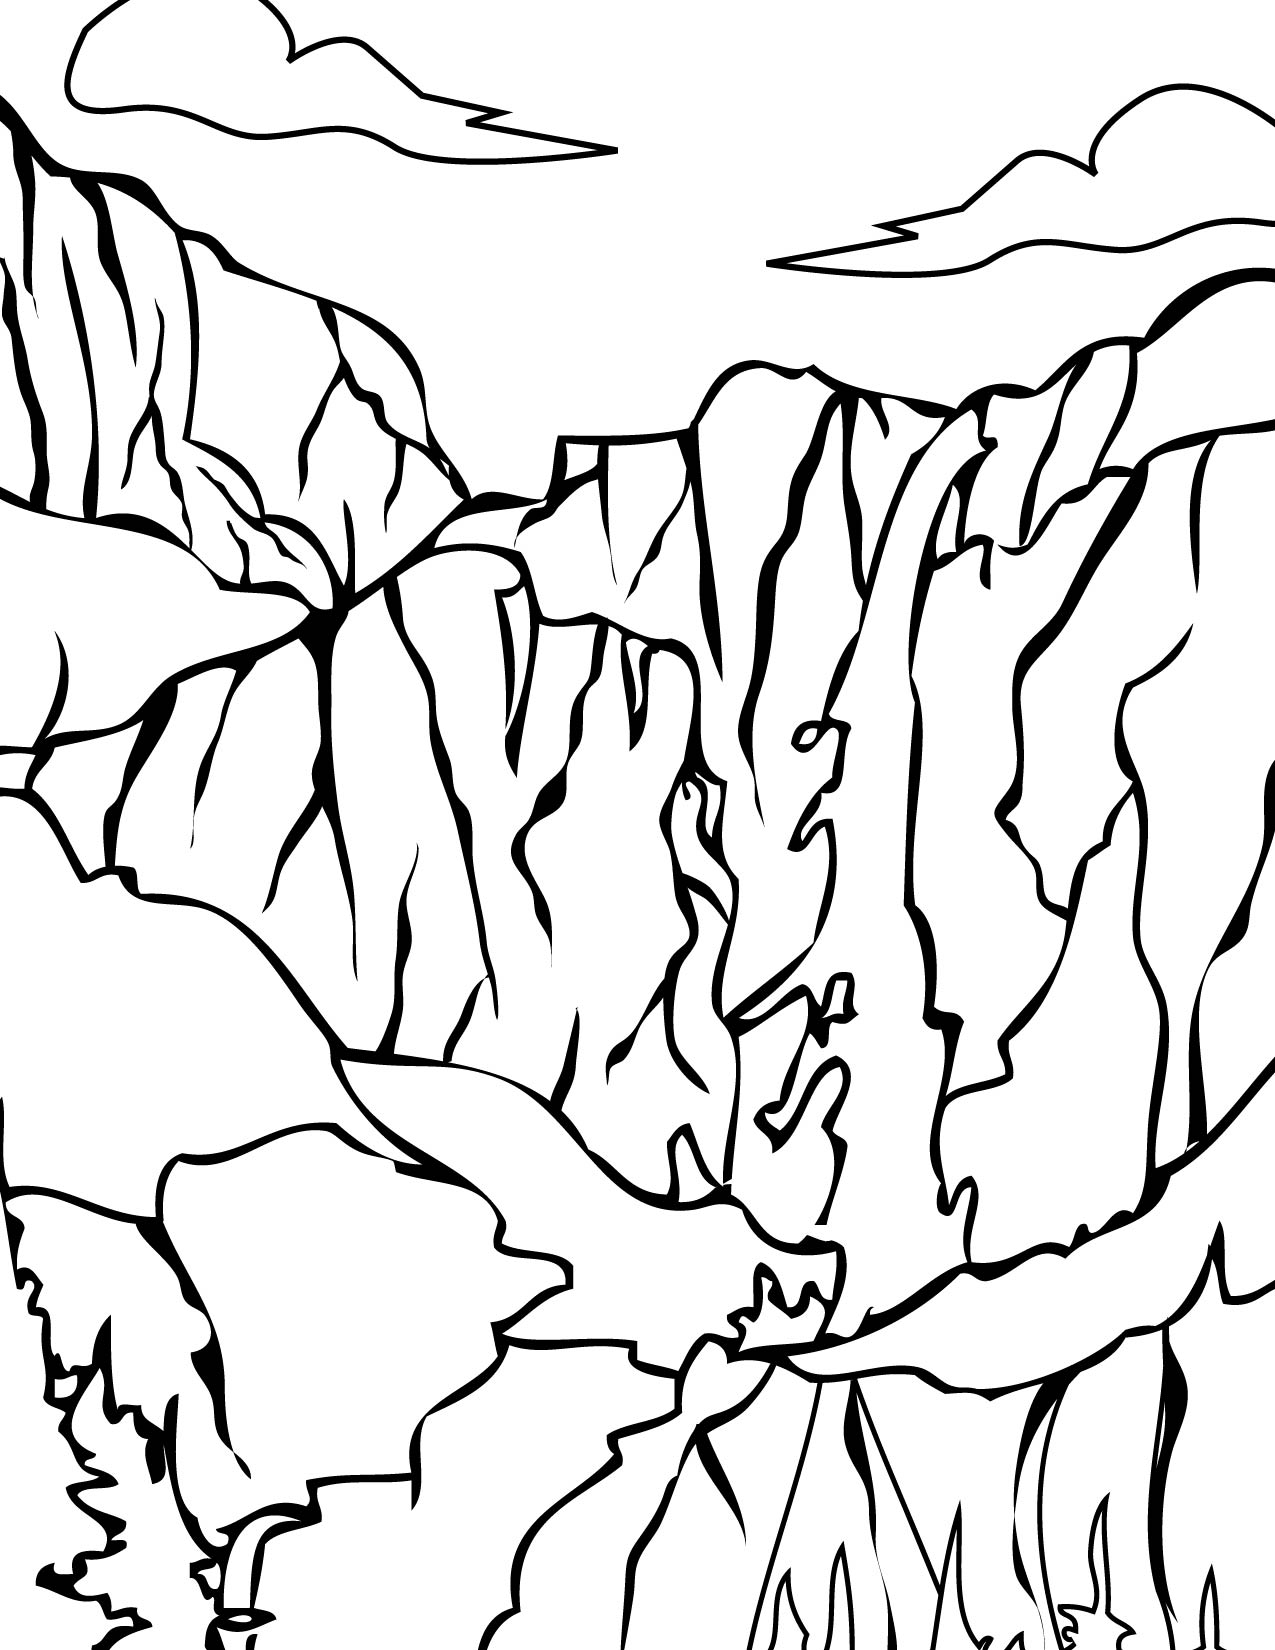 Yosemite national park coloring download yosemite for Park coloring pages